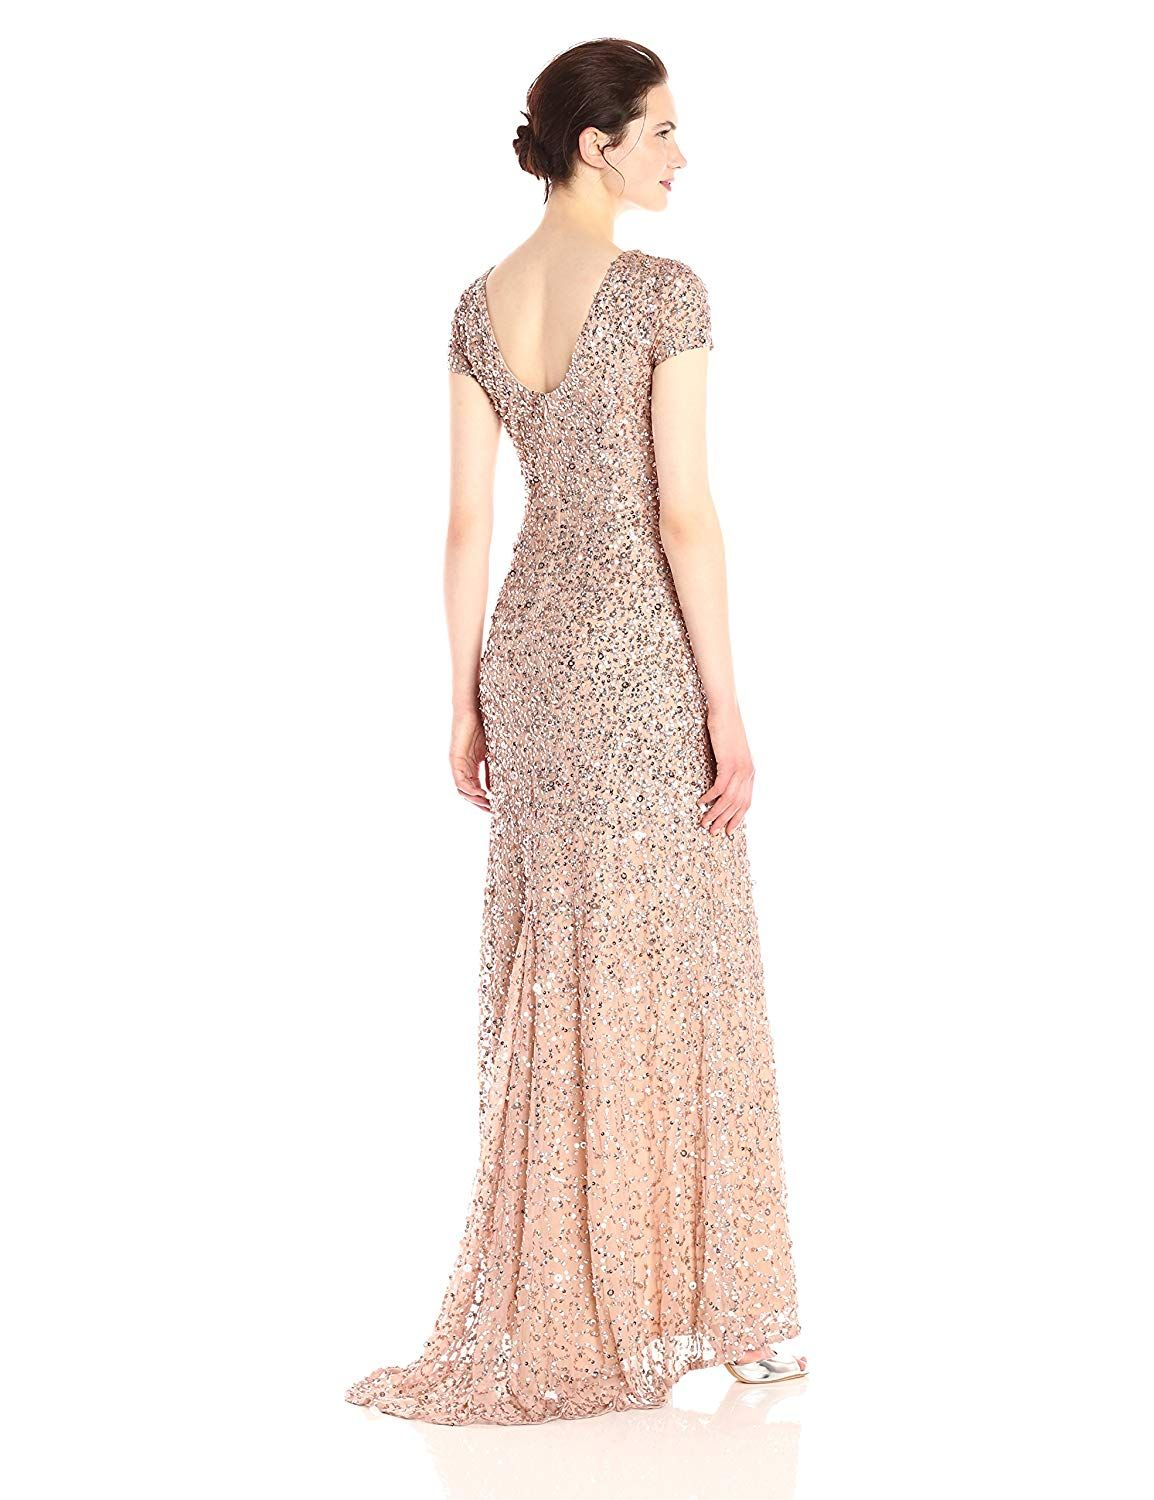 7ed143fb Adrianna Papell Women's Short-Sleeve All Over Sequin Gown 4.3 out of 5  stars 80 customer reviews Price: $145.80 - $280.00